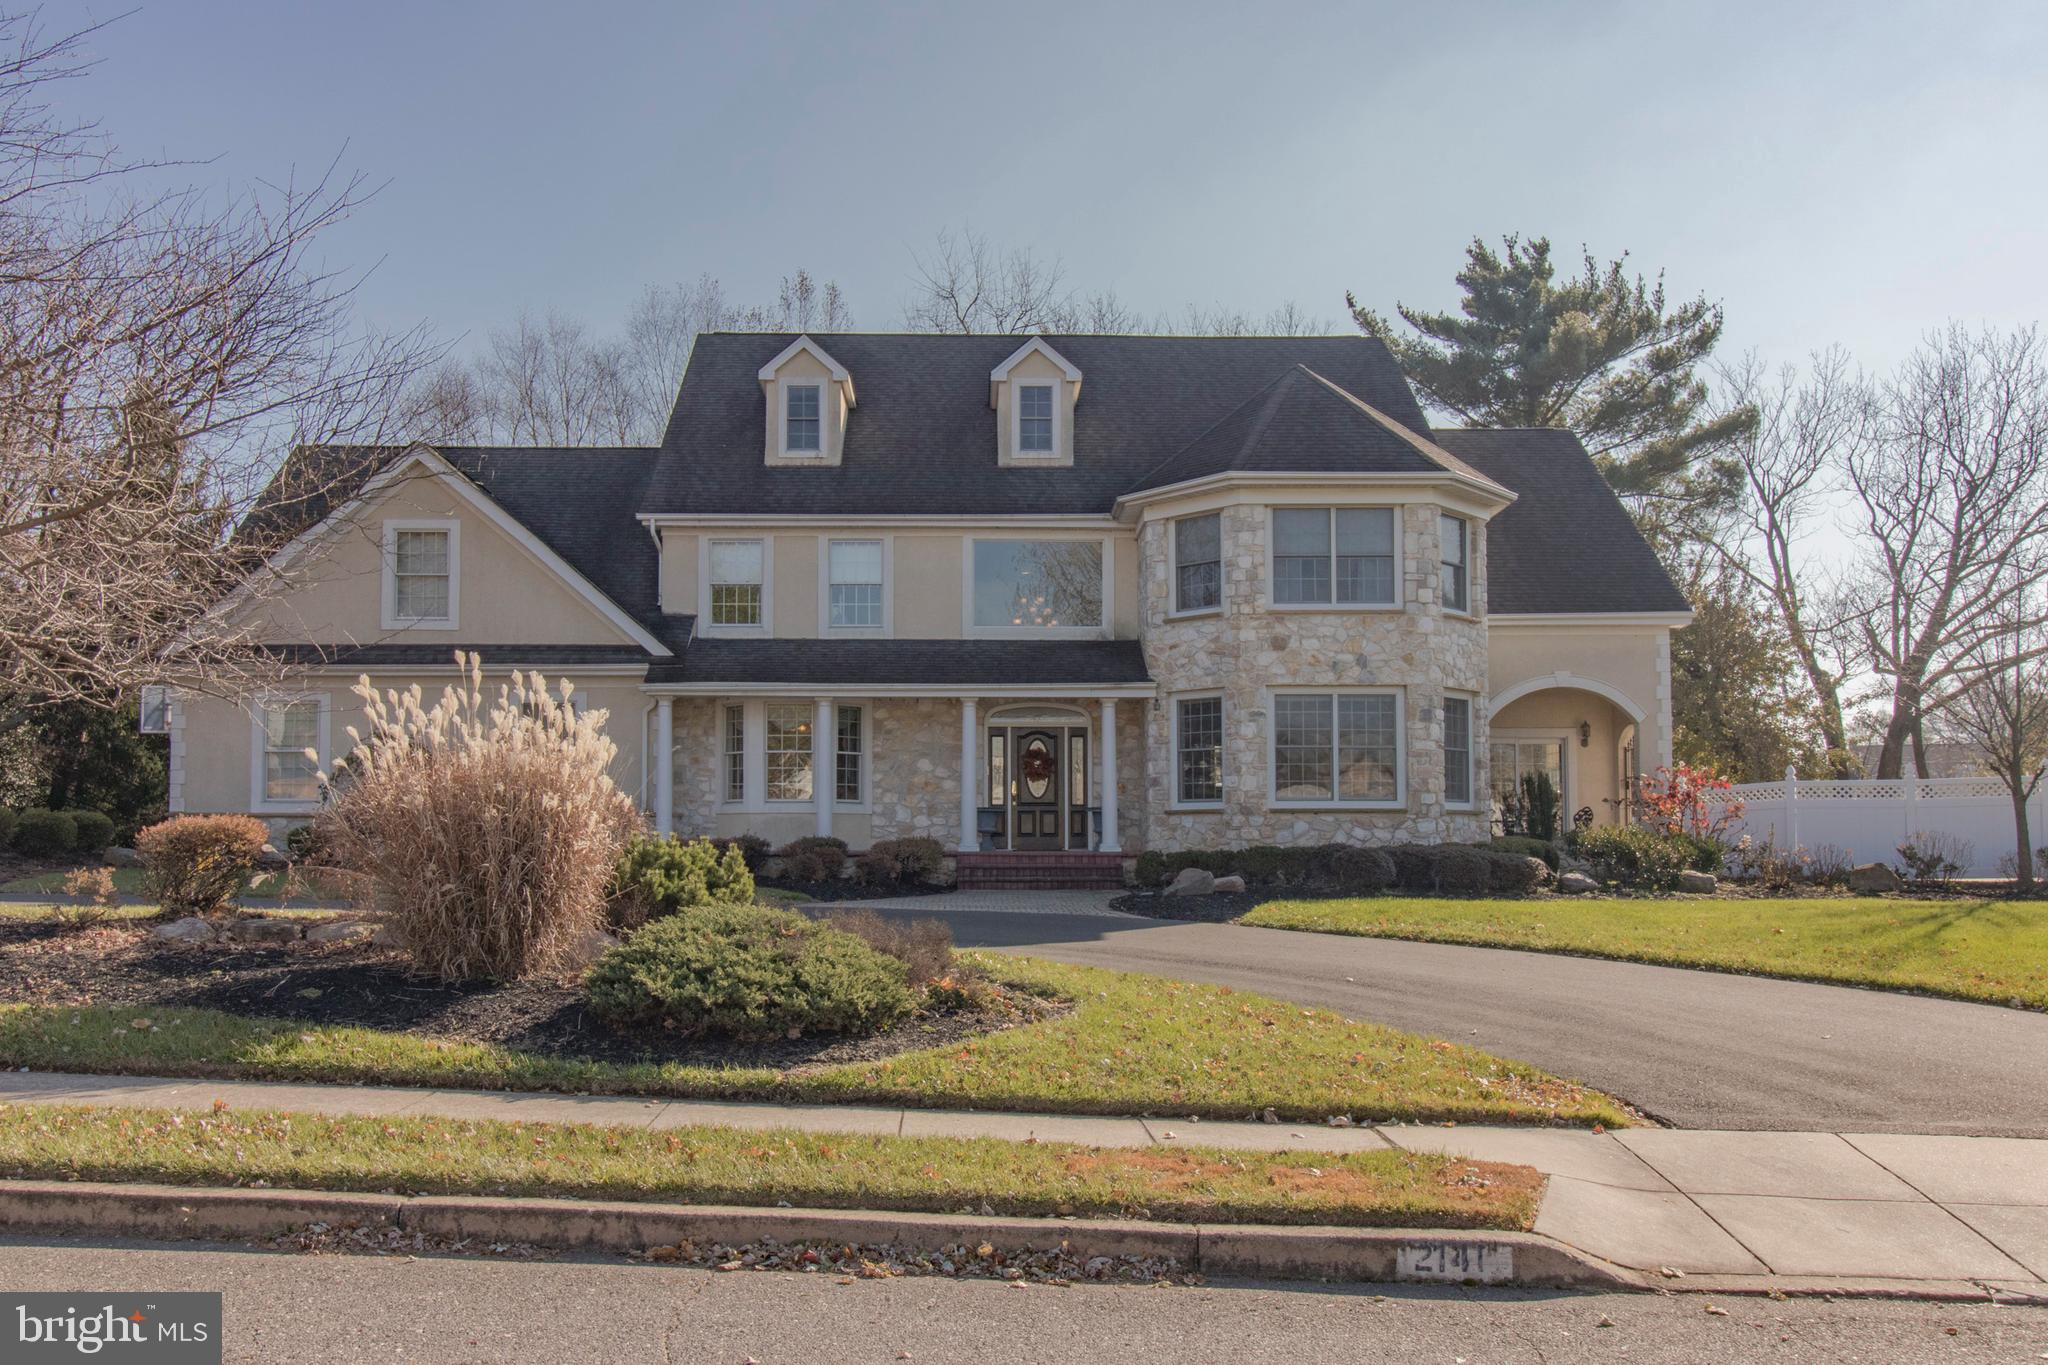 2141 SAINT ALBERTS CIRCLE, HUNTINGDON VALLEY, PA 19006